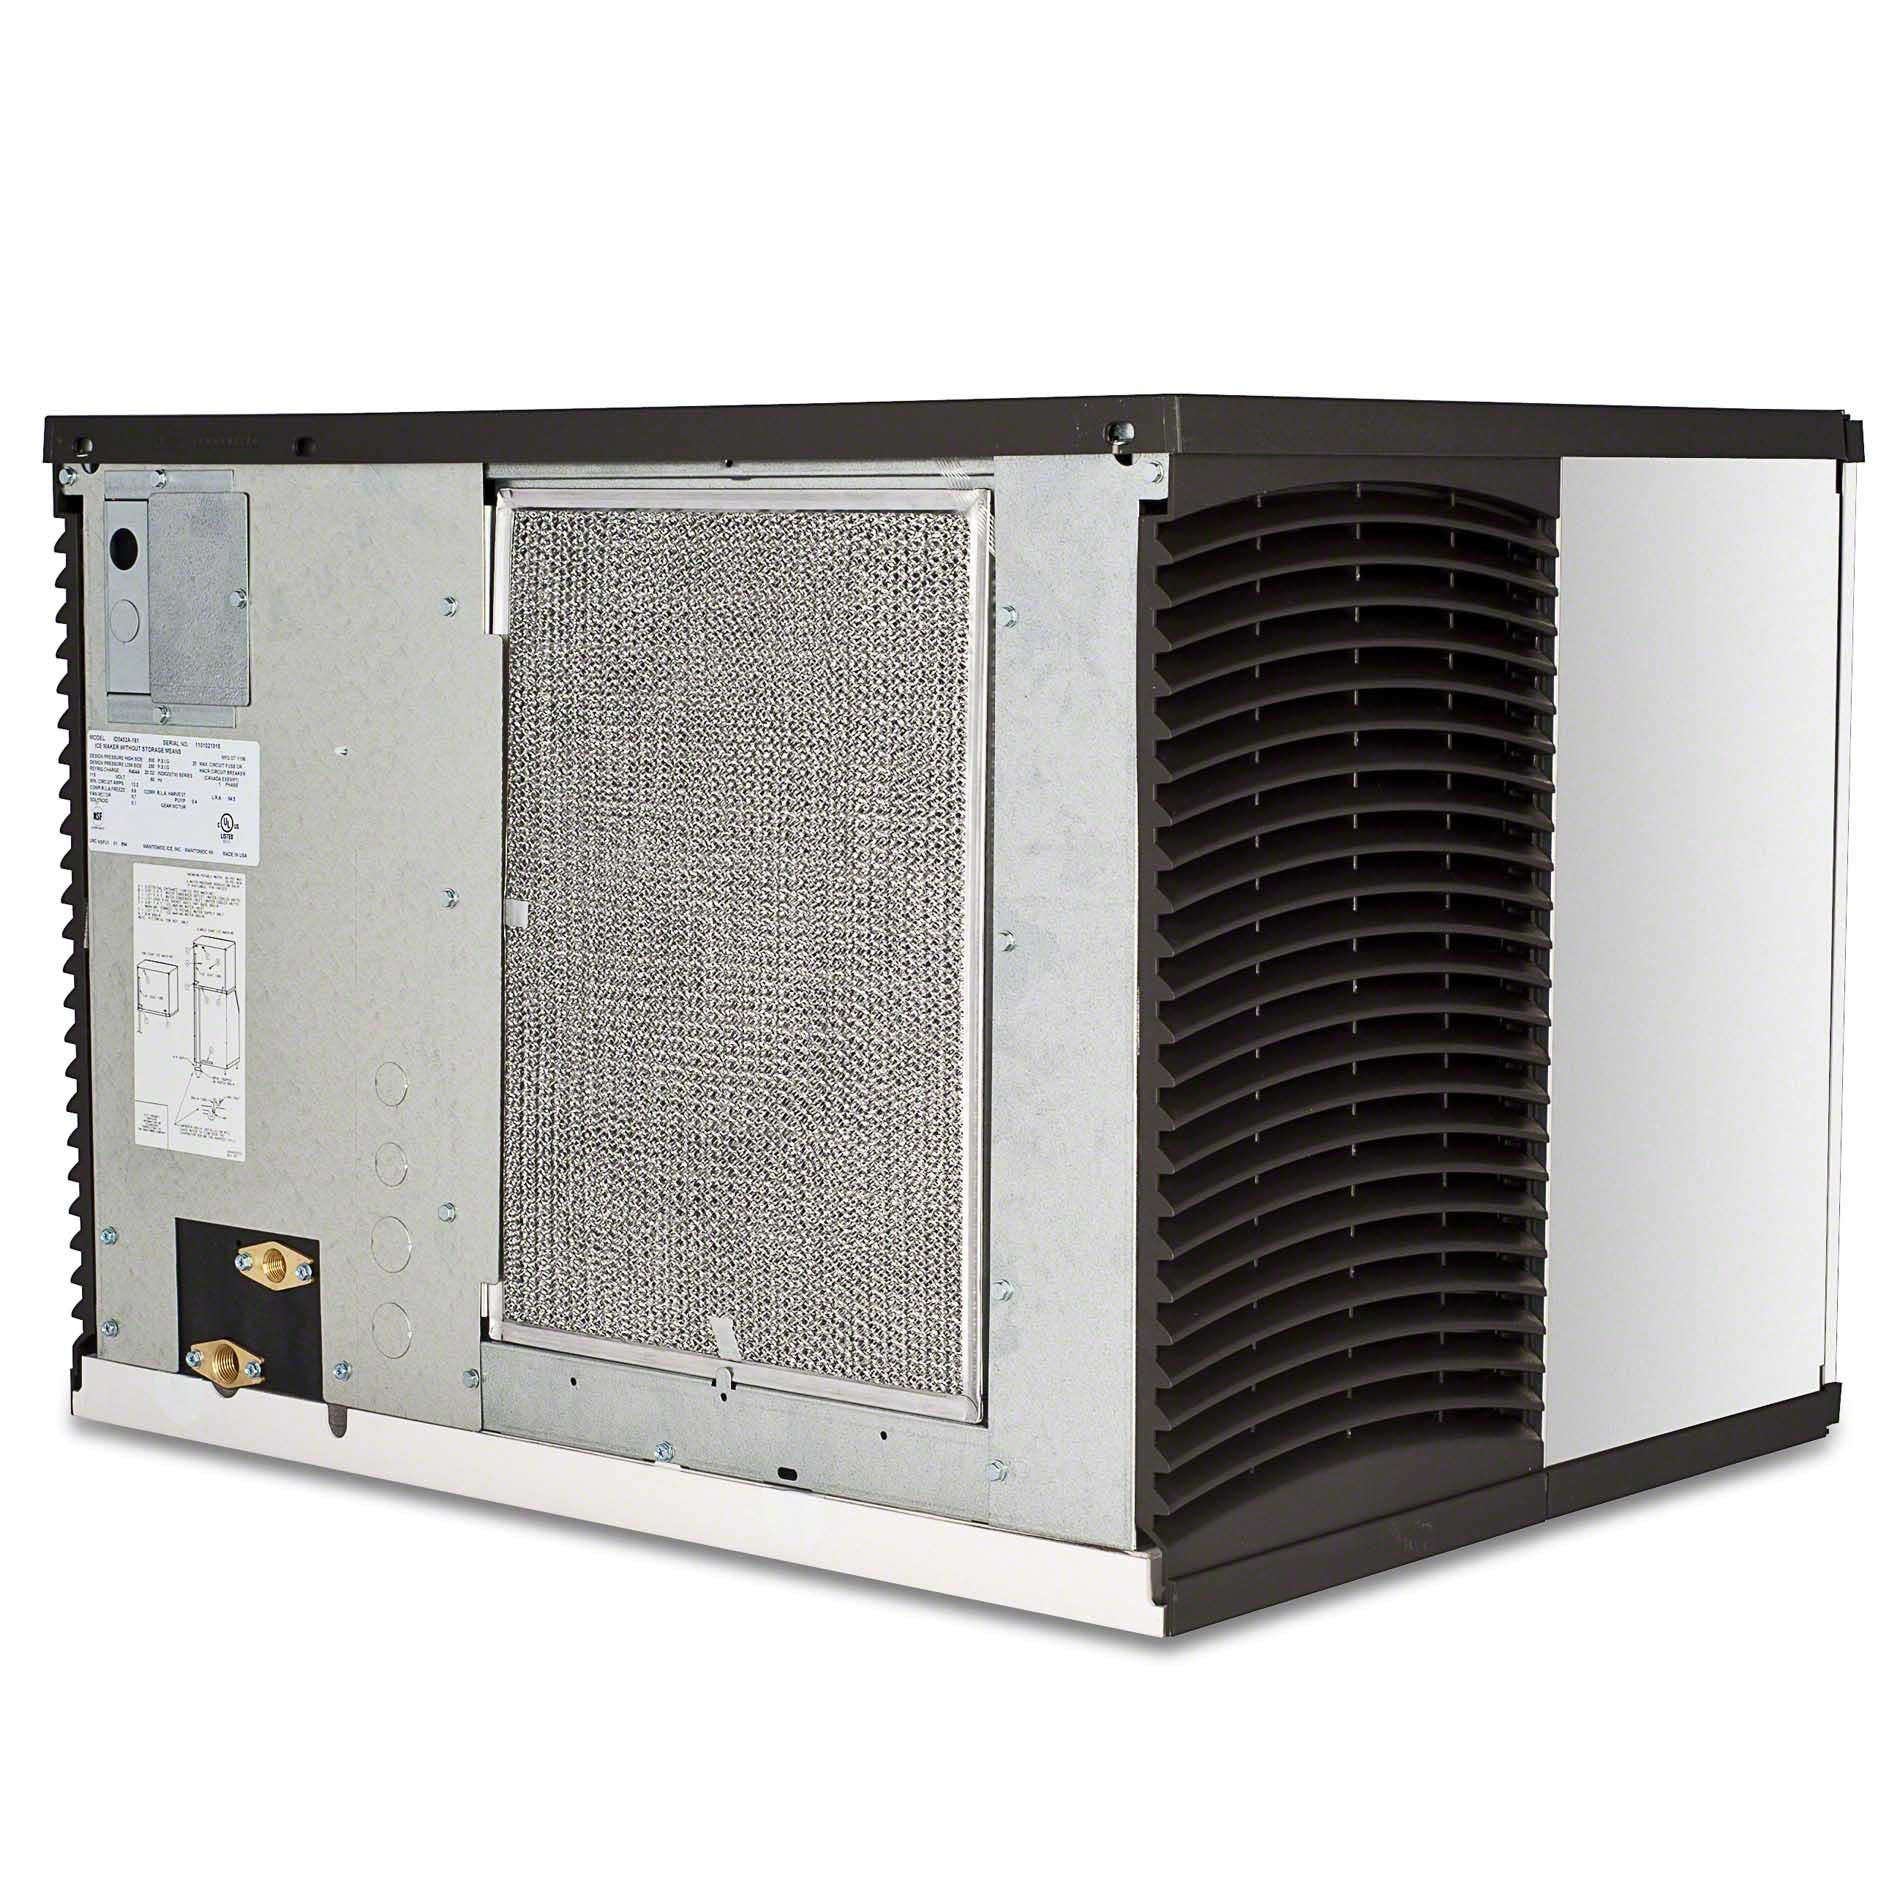 Manitowoc - ID-0452A 420 lb Full Size Cube Ice Machine - Indigo Series Ice machine sold by Food Service Warehouse